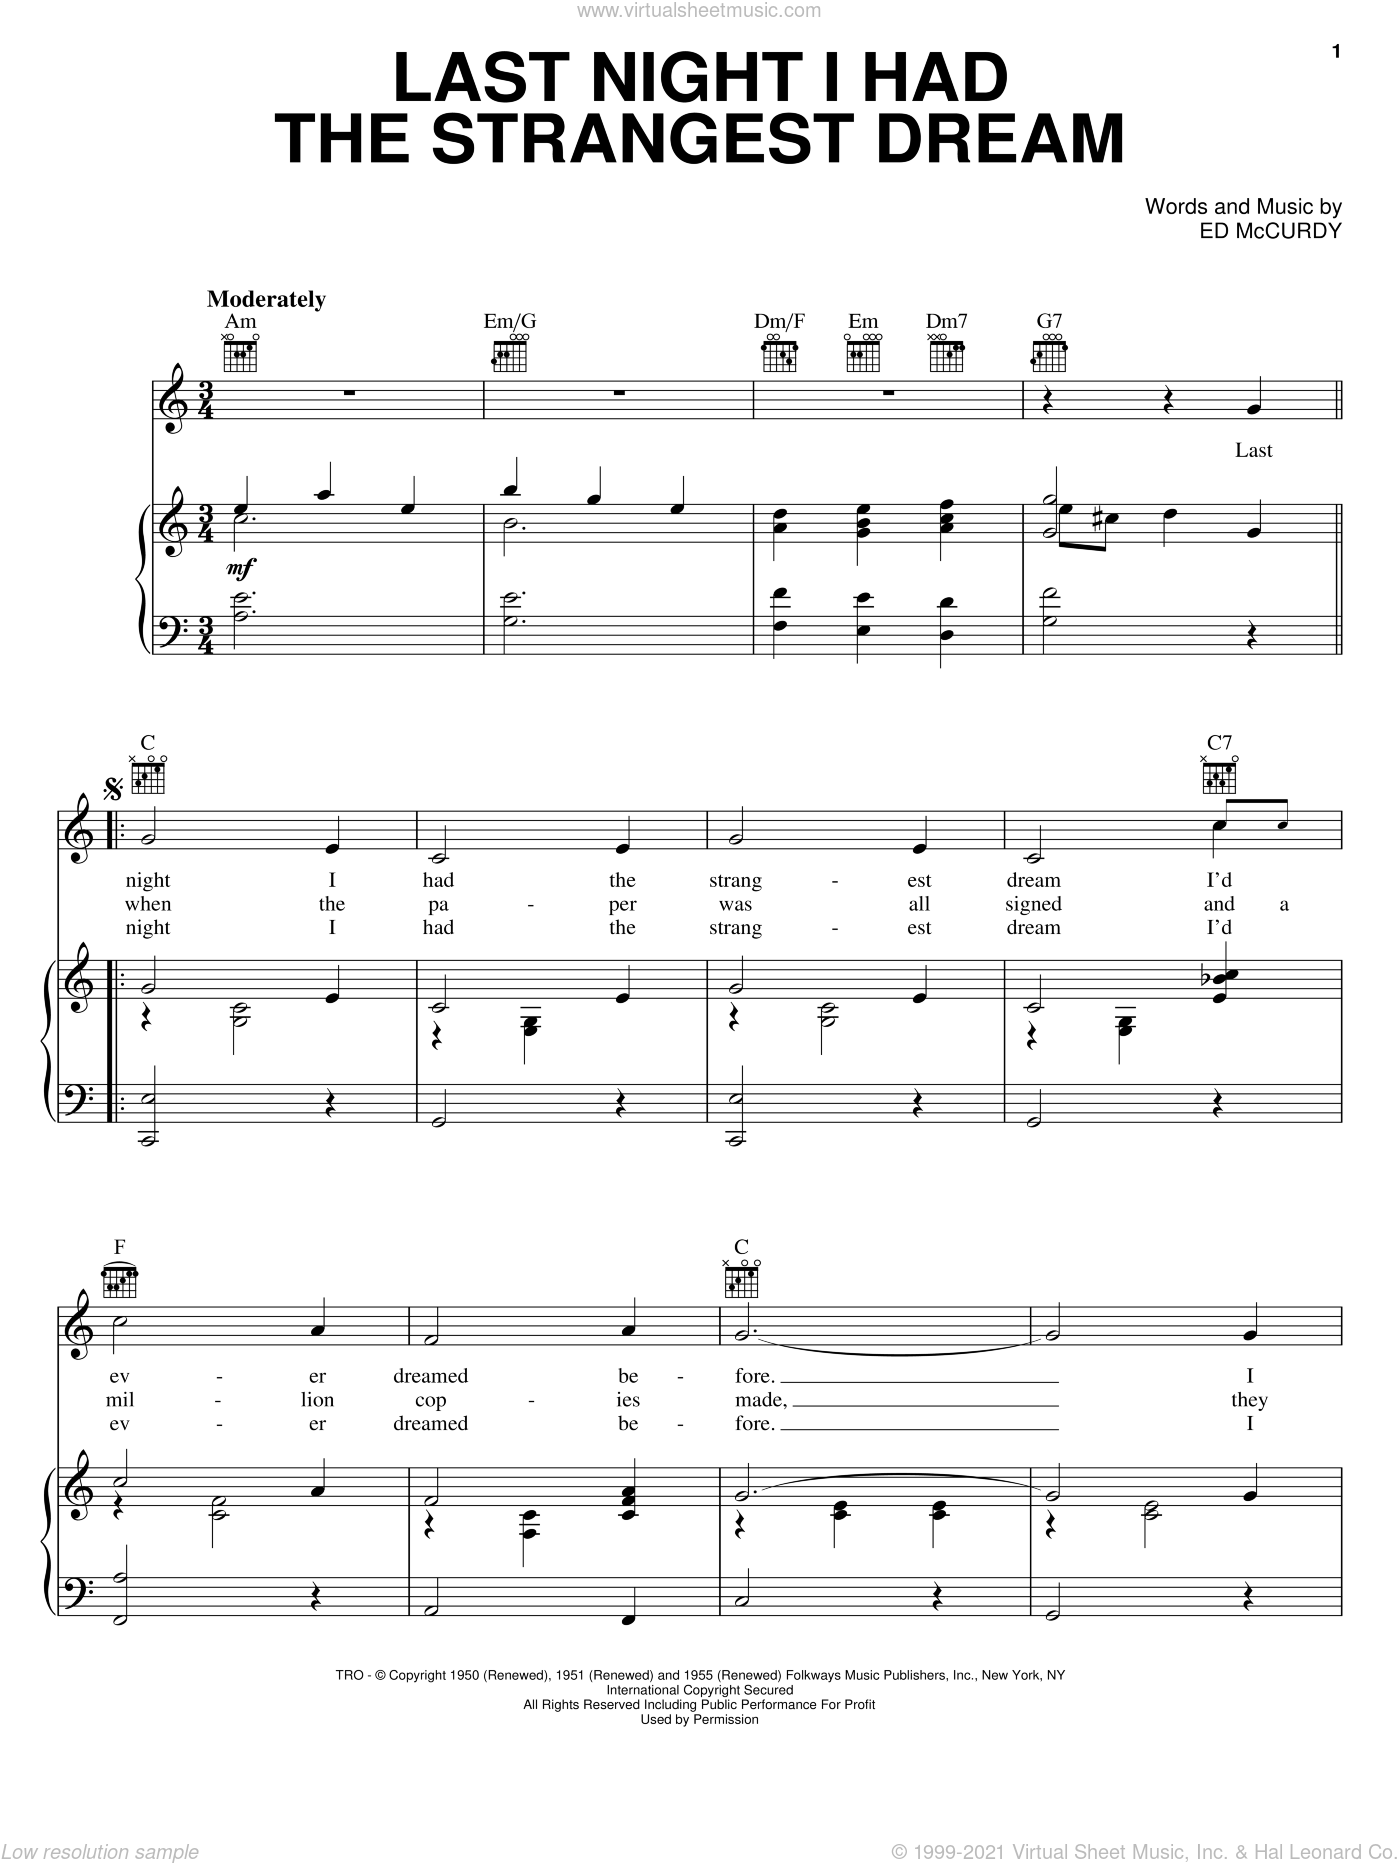 Last Night I Had The Strangest Dream sheet music for voice, piano or guitar by Ed McCurdy